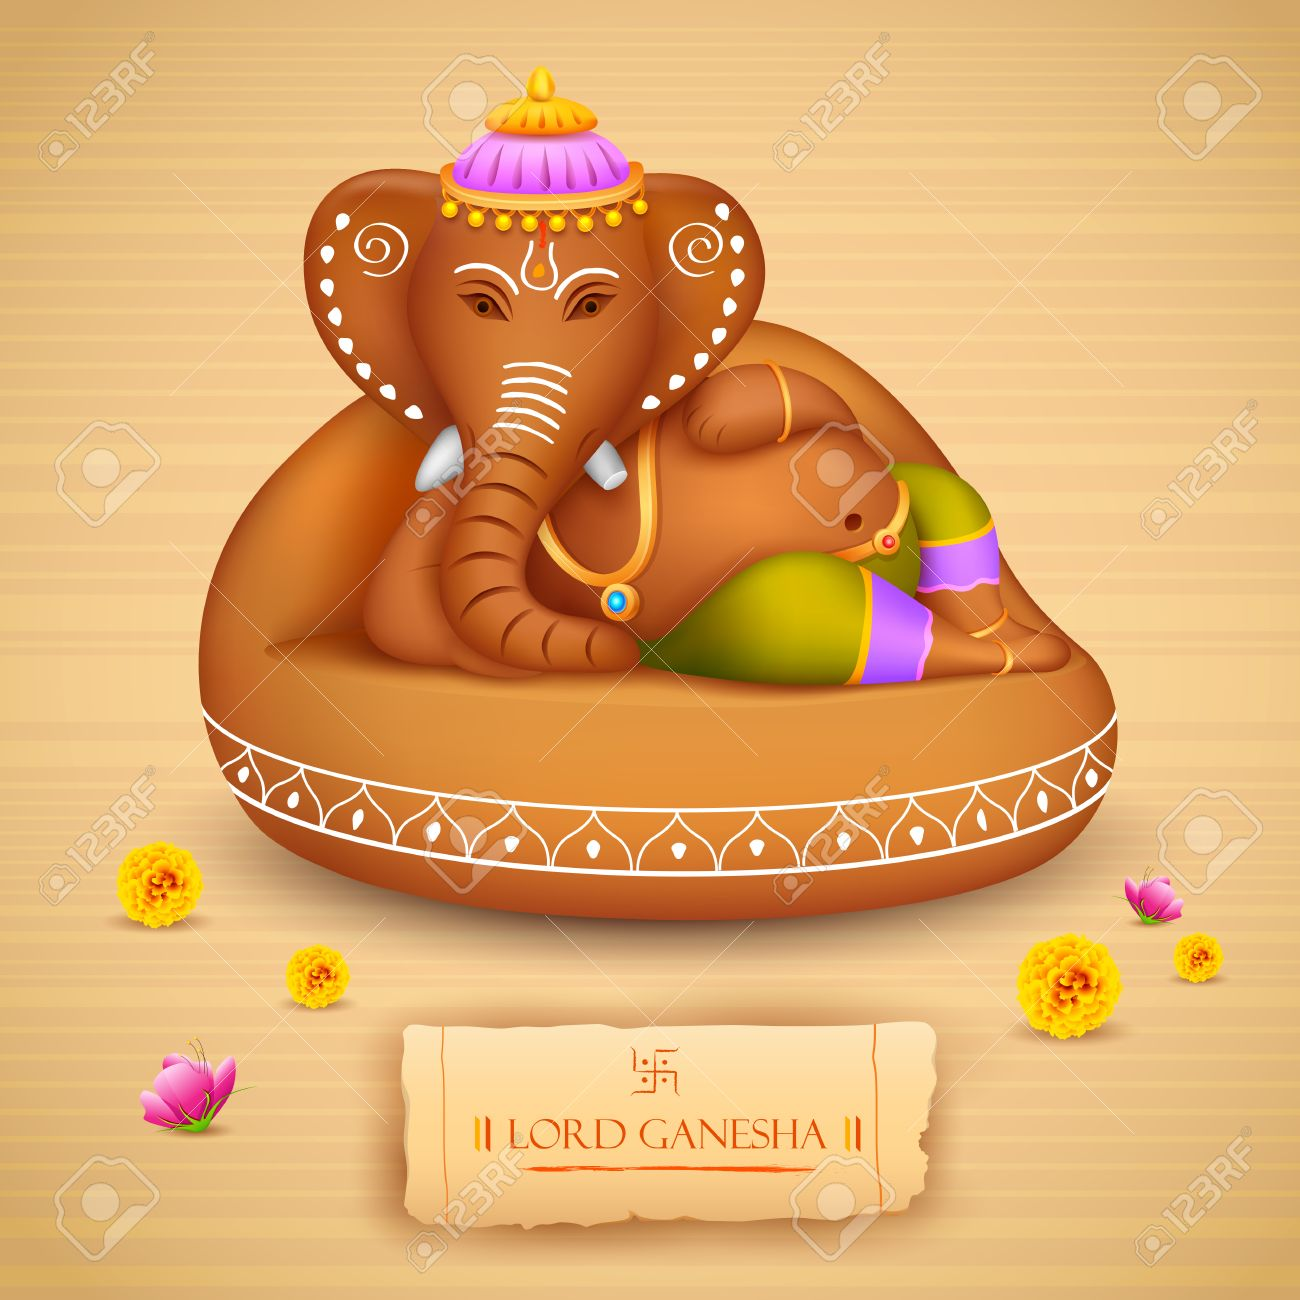 illustration of statue of lord ganesha made of clay ganesh chaturthi